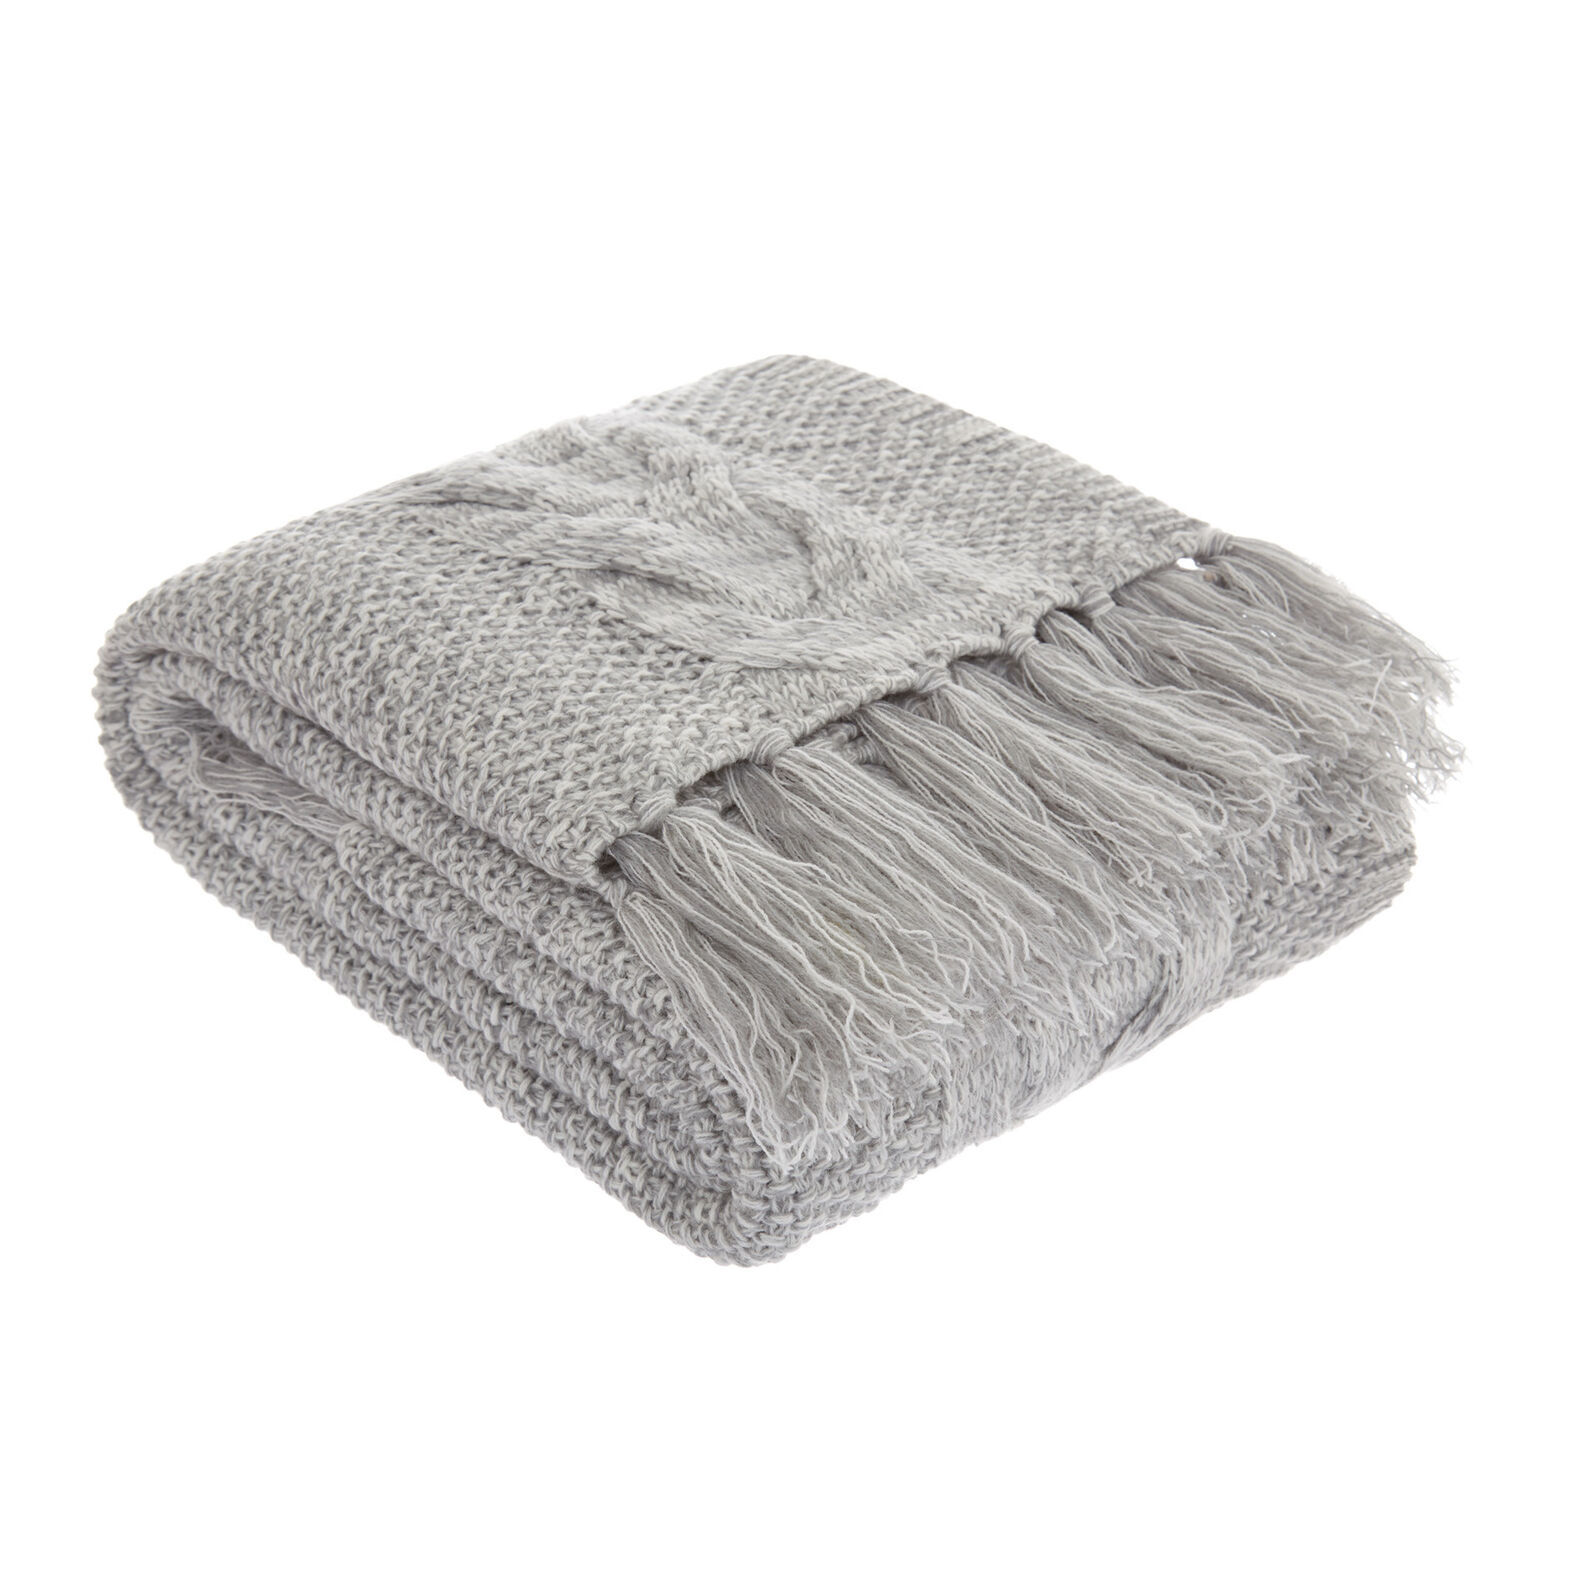 Solid colour cable knit throw